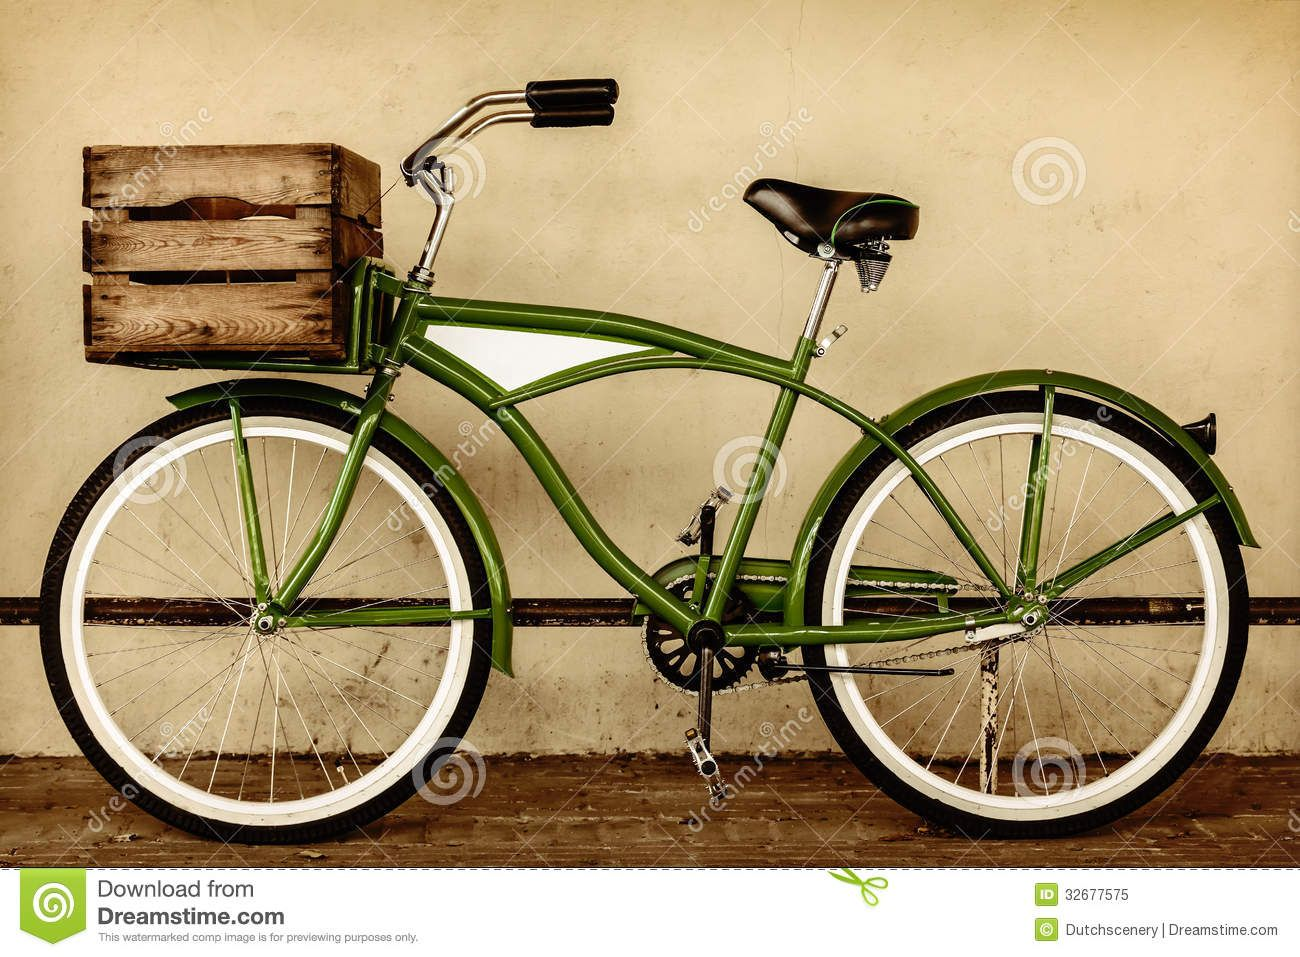 Retro Styled Sepia Image Of A Vintage Beach Cruiser Bicycle With Wooden Crate Stock Photo 21576496